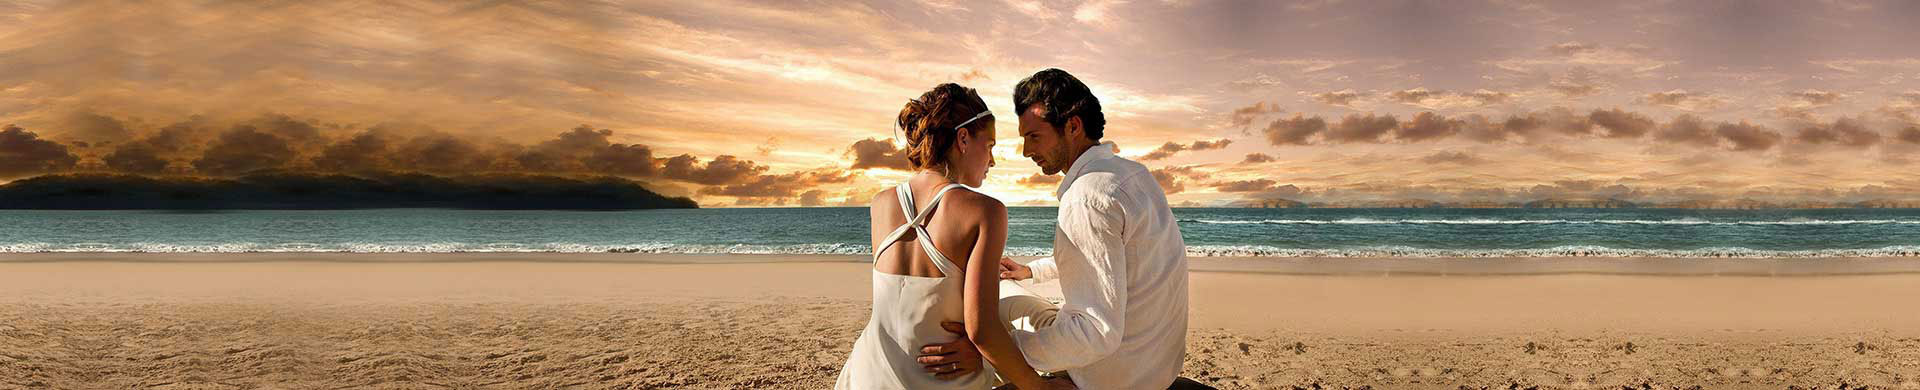 Plan romantic moments in Sri Lanka with Honeymoon Package from the best Tour Operators in Sri Lanka